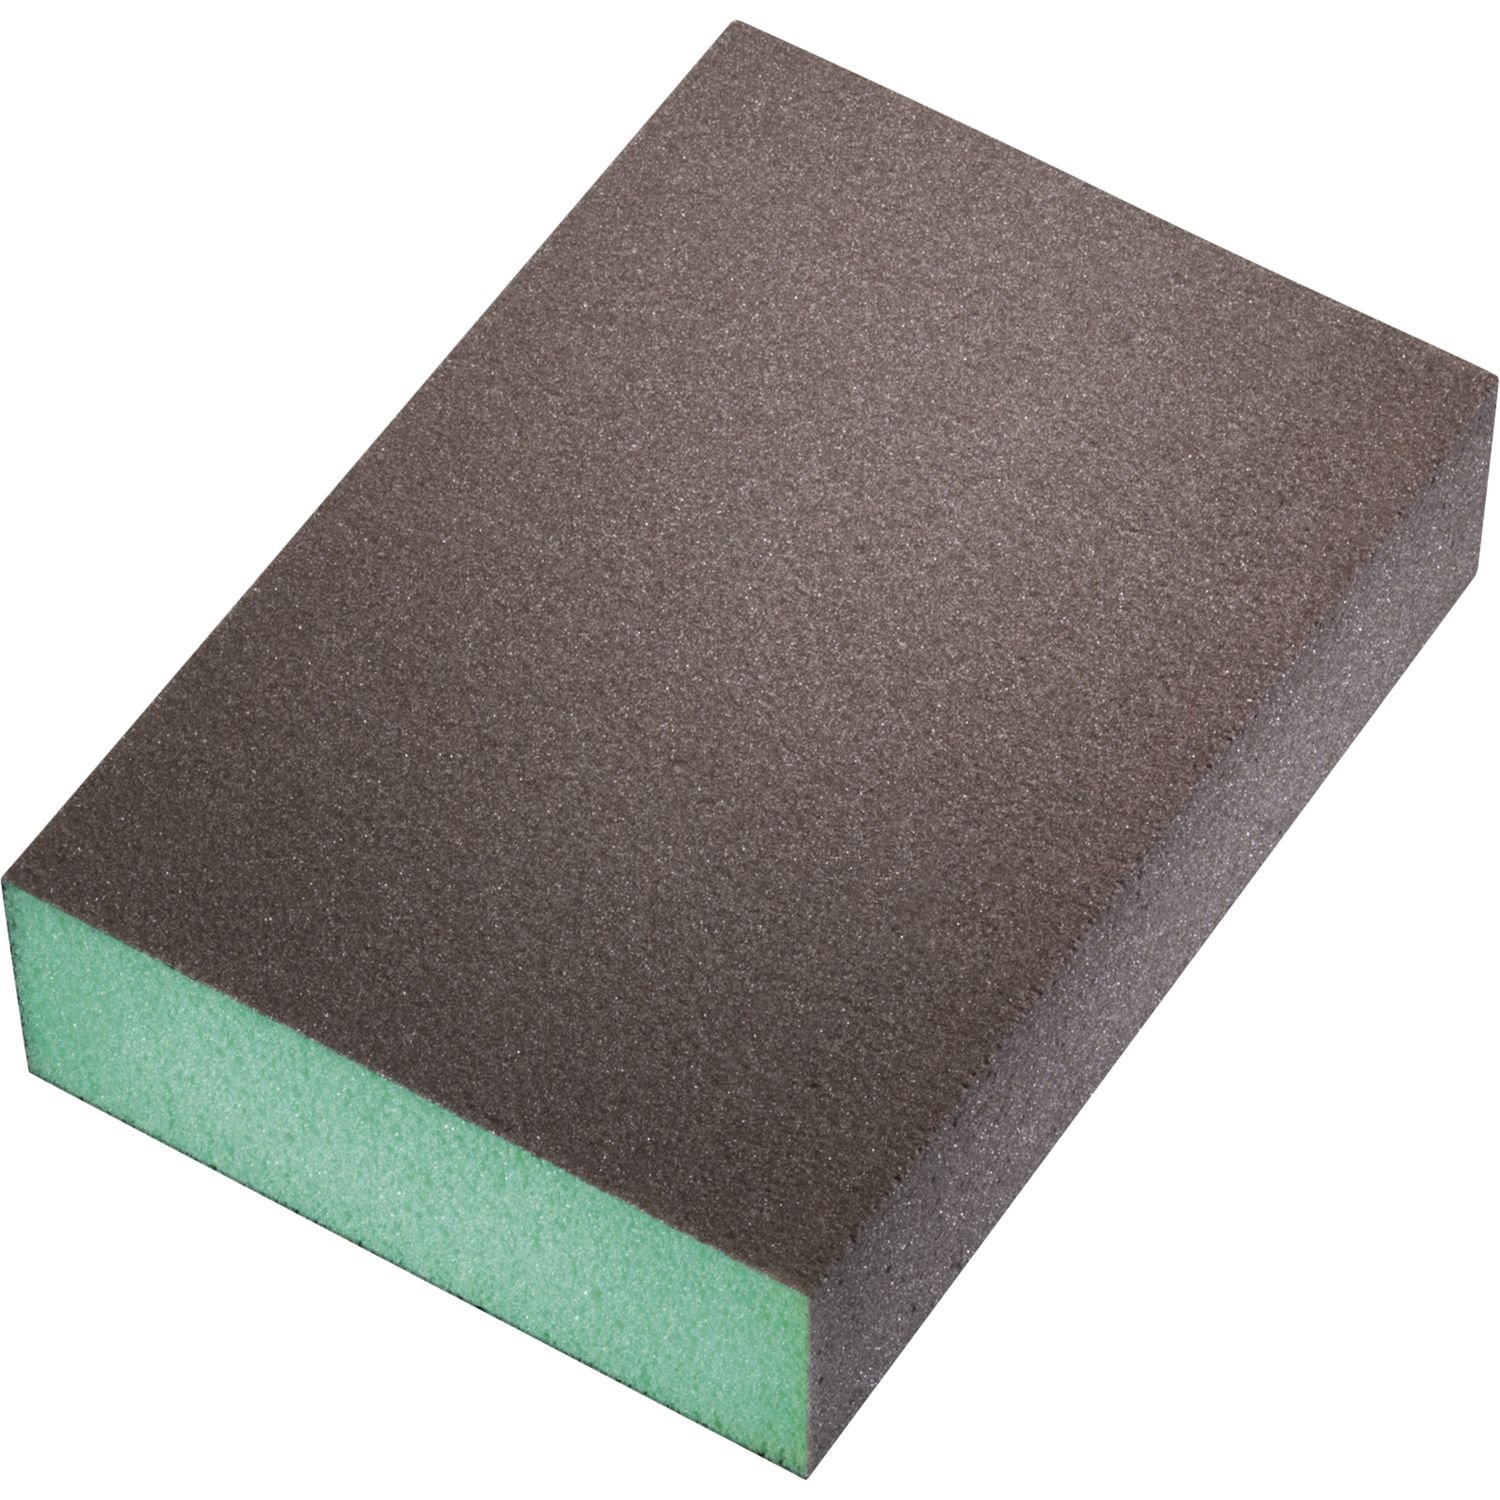 Sia Super Fine Sanding Block Soft 7991, 98  x 69  x 26  –   Green/Light F03E00R8  K0 98 x 69 x 26 - Green/Light F03E00R8 K0 F03E00R8K0